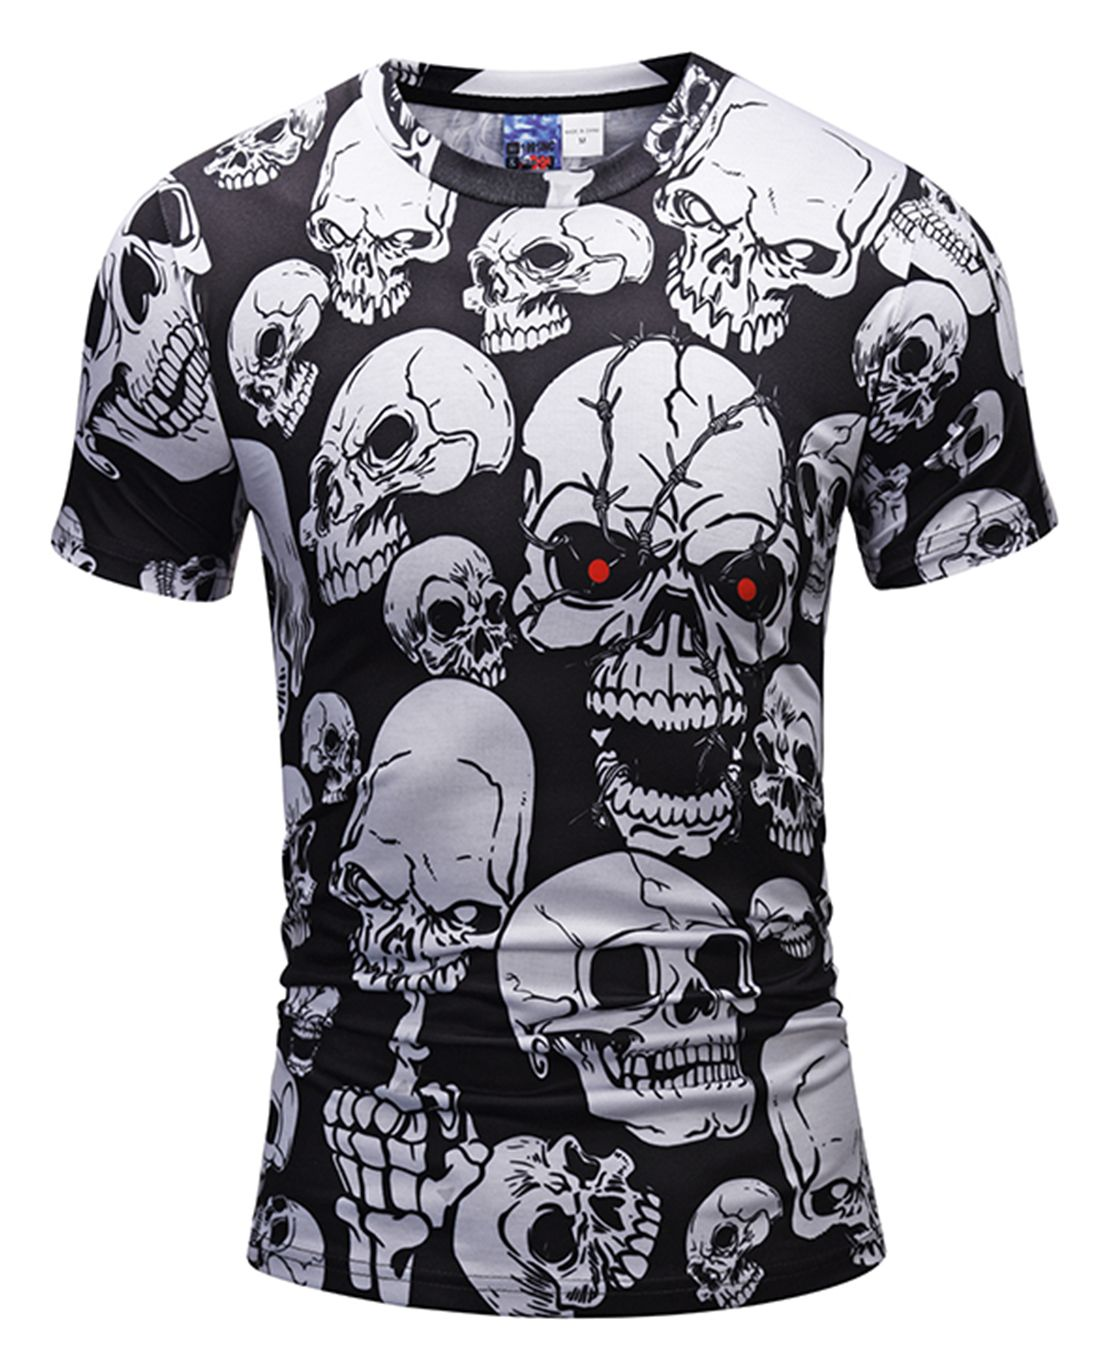 PHILIPP PLEIN T-shirt Black White Skull Anti-Collar Men Casual Tee M-3XL